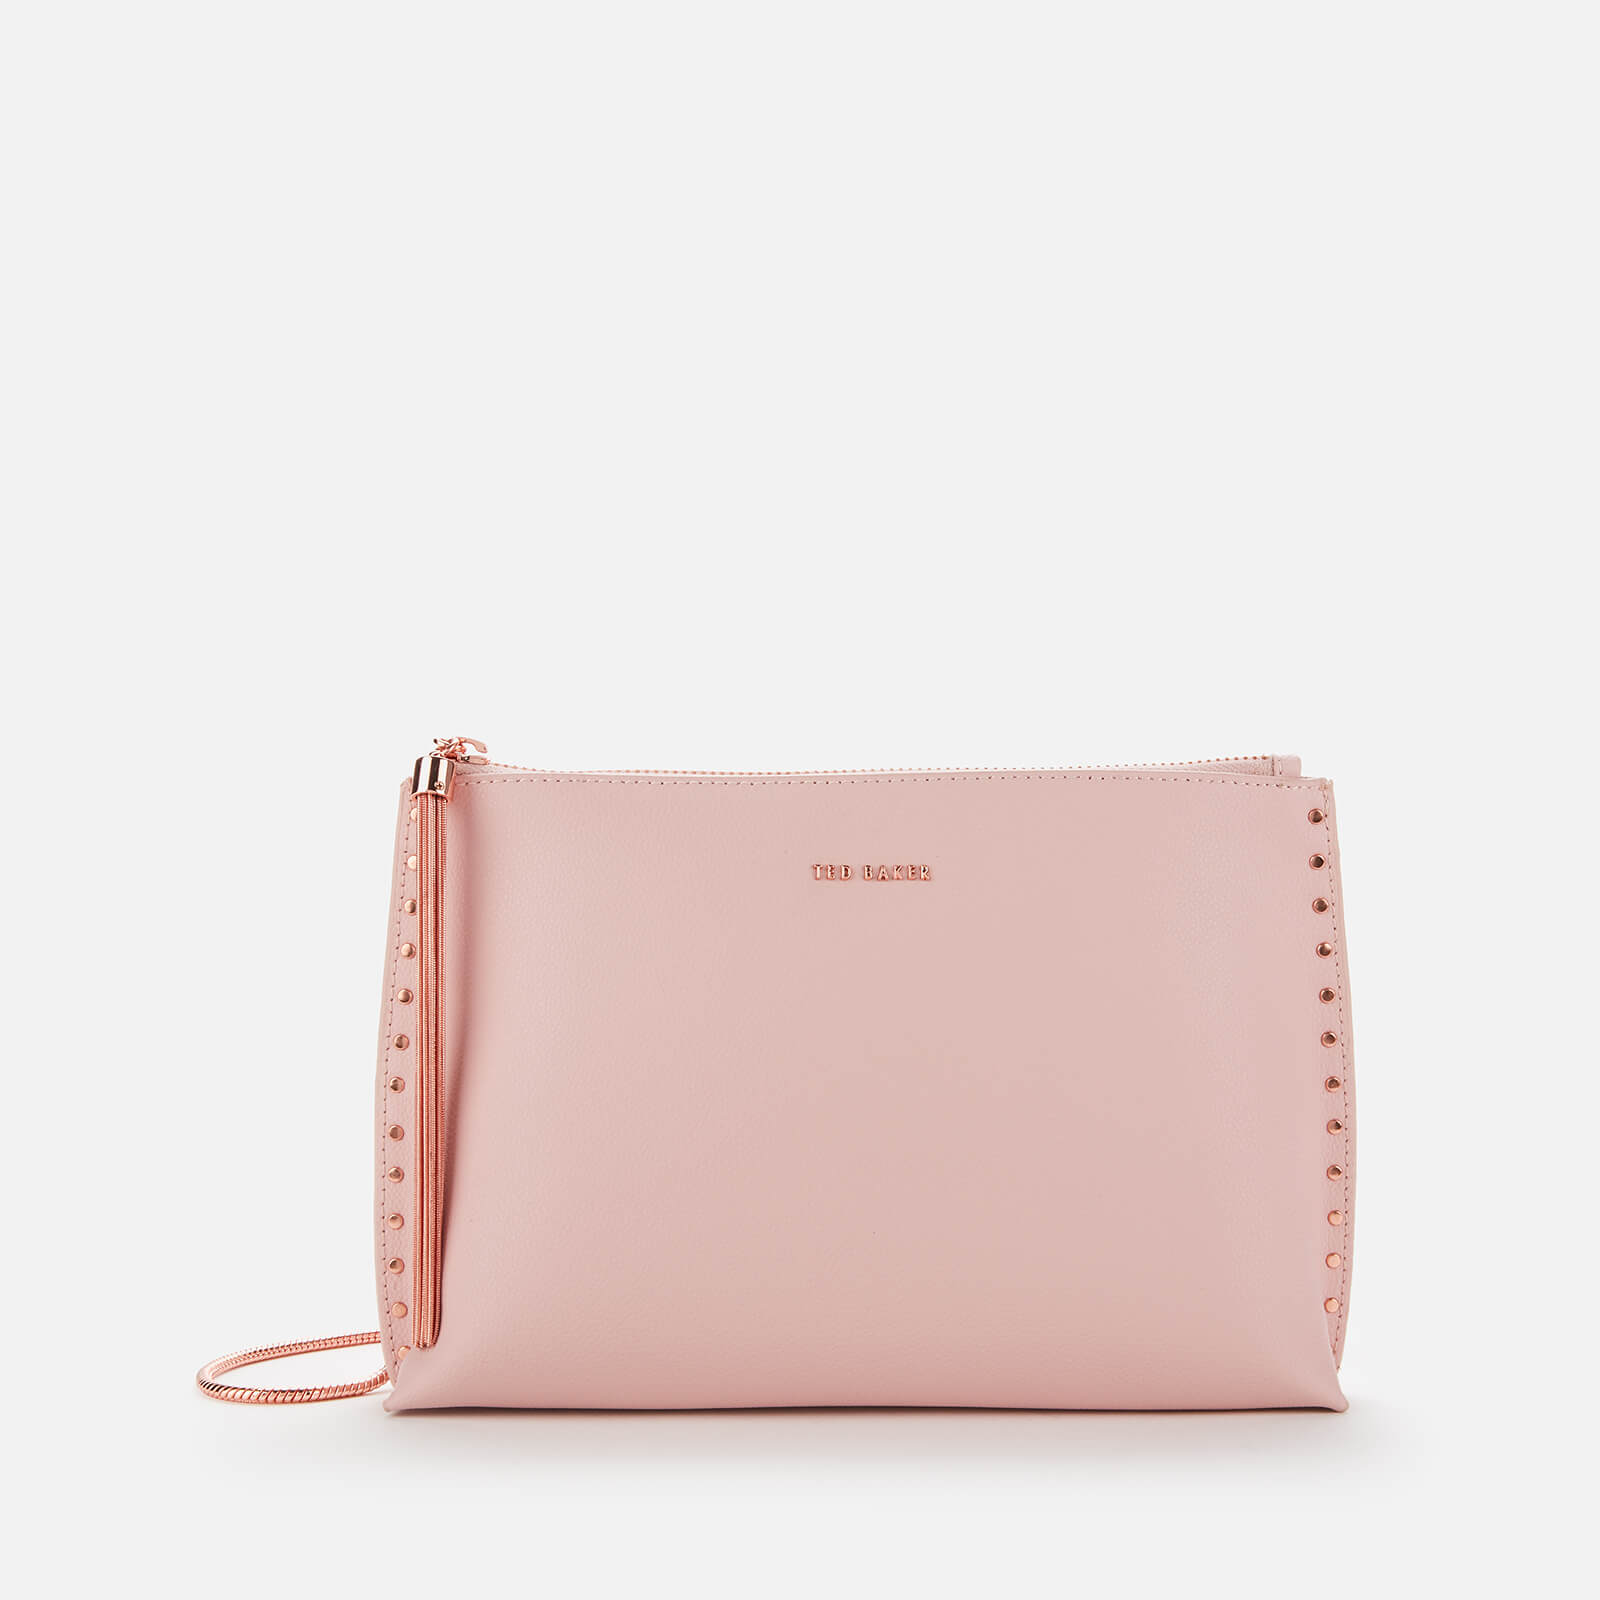 Ted Baker Women's Tesssa Knotted Zip Cross Body Bag - Light Pink 原價99英鎊 優惠價70